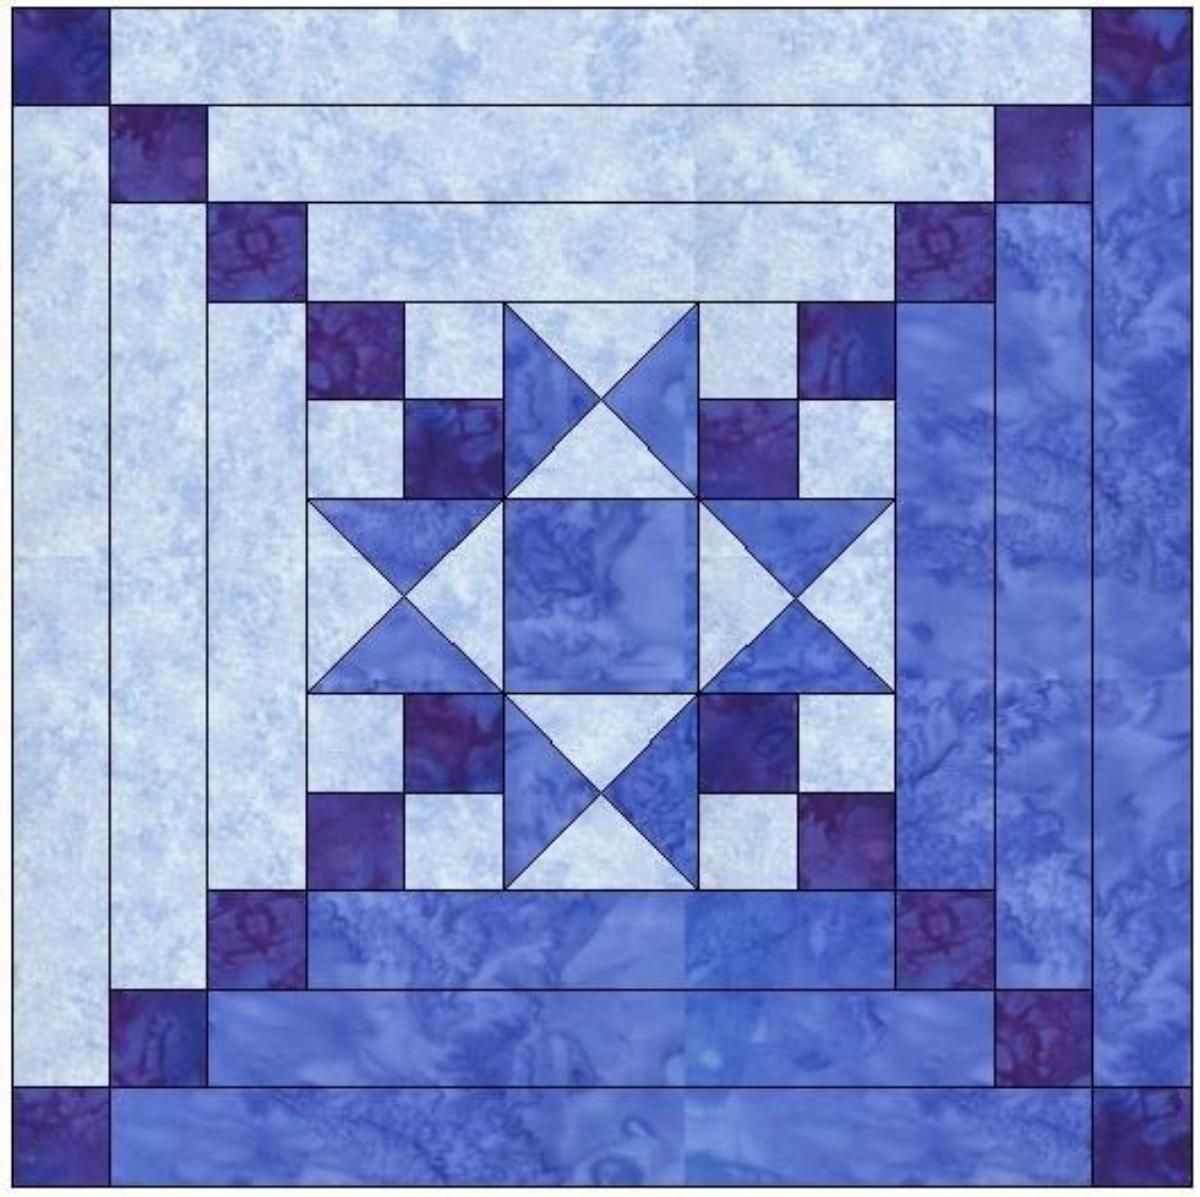 Star Center Log Cabin Quilt Block Log Cabin Quilt Pattern Log Cabin Quilt Blocks Log Cabin Quilts